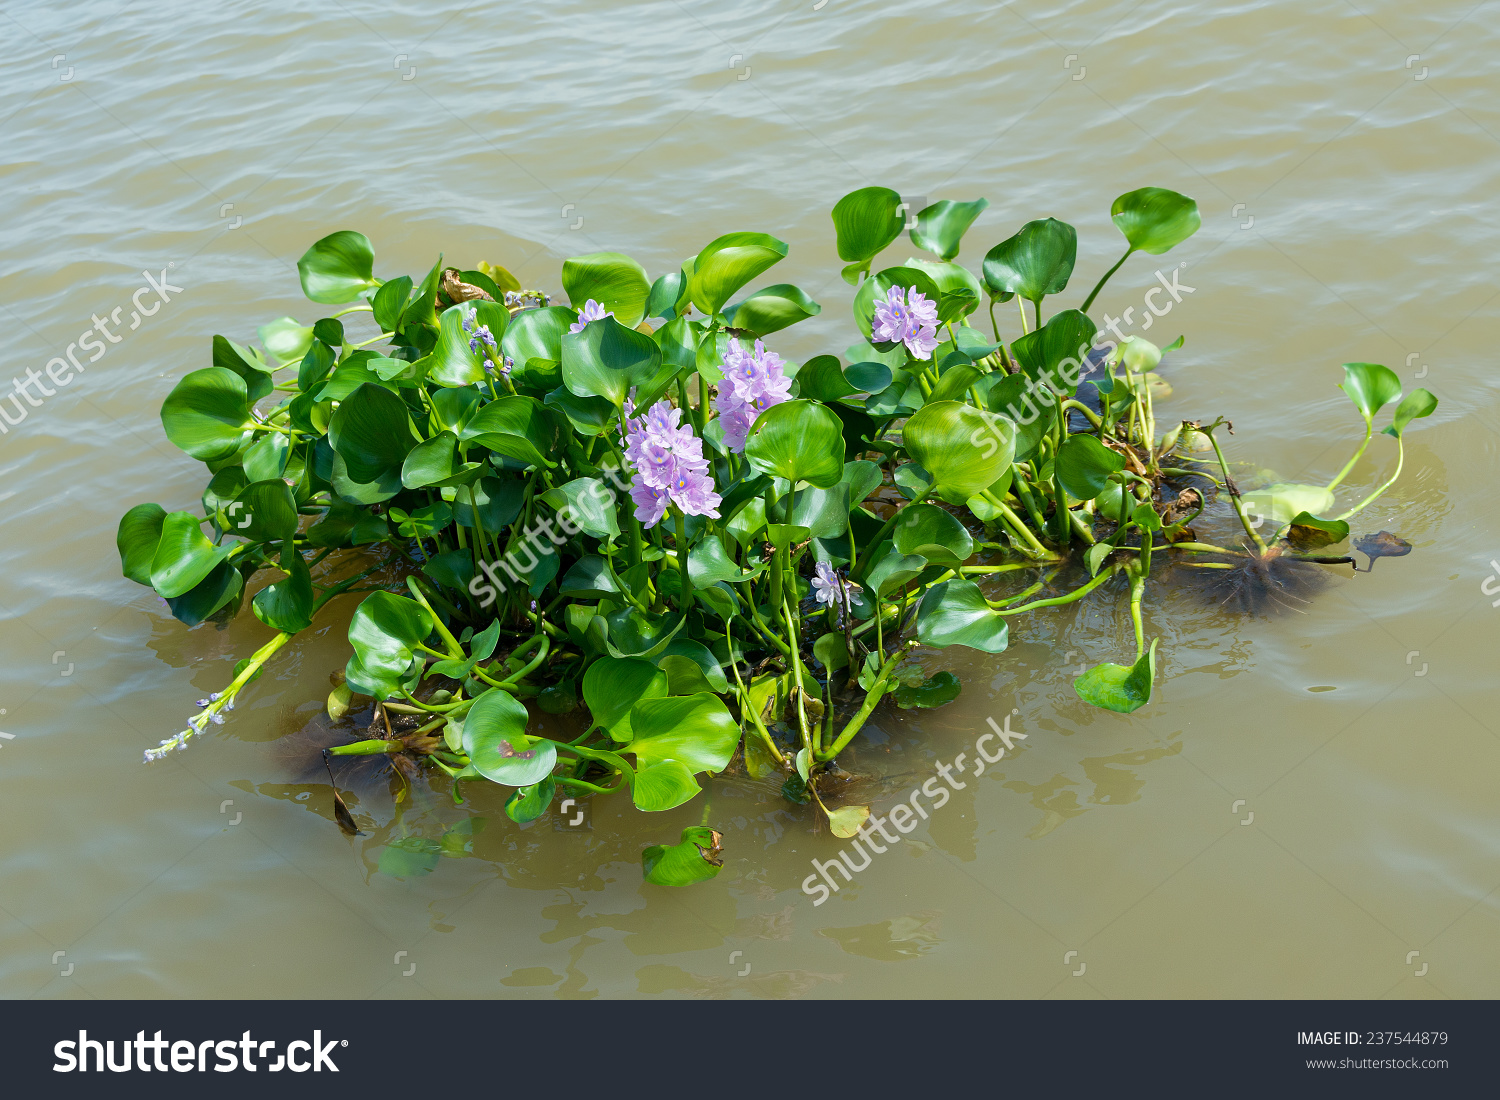 Water Hyacinth Plant Floating On River Stock Photo 237544879.